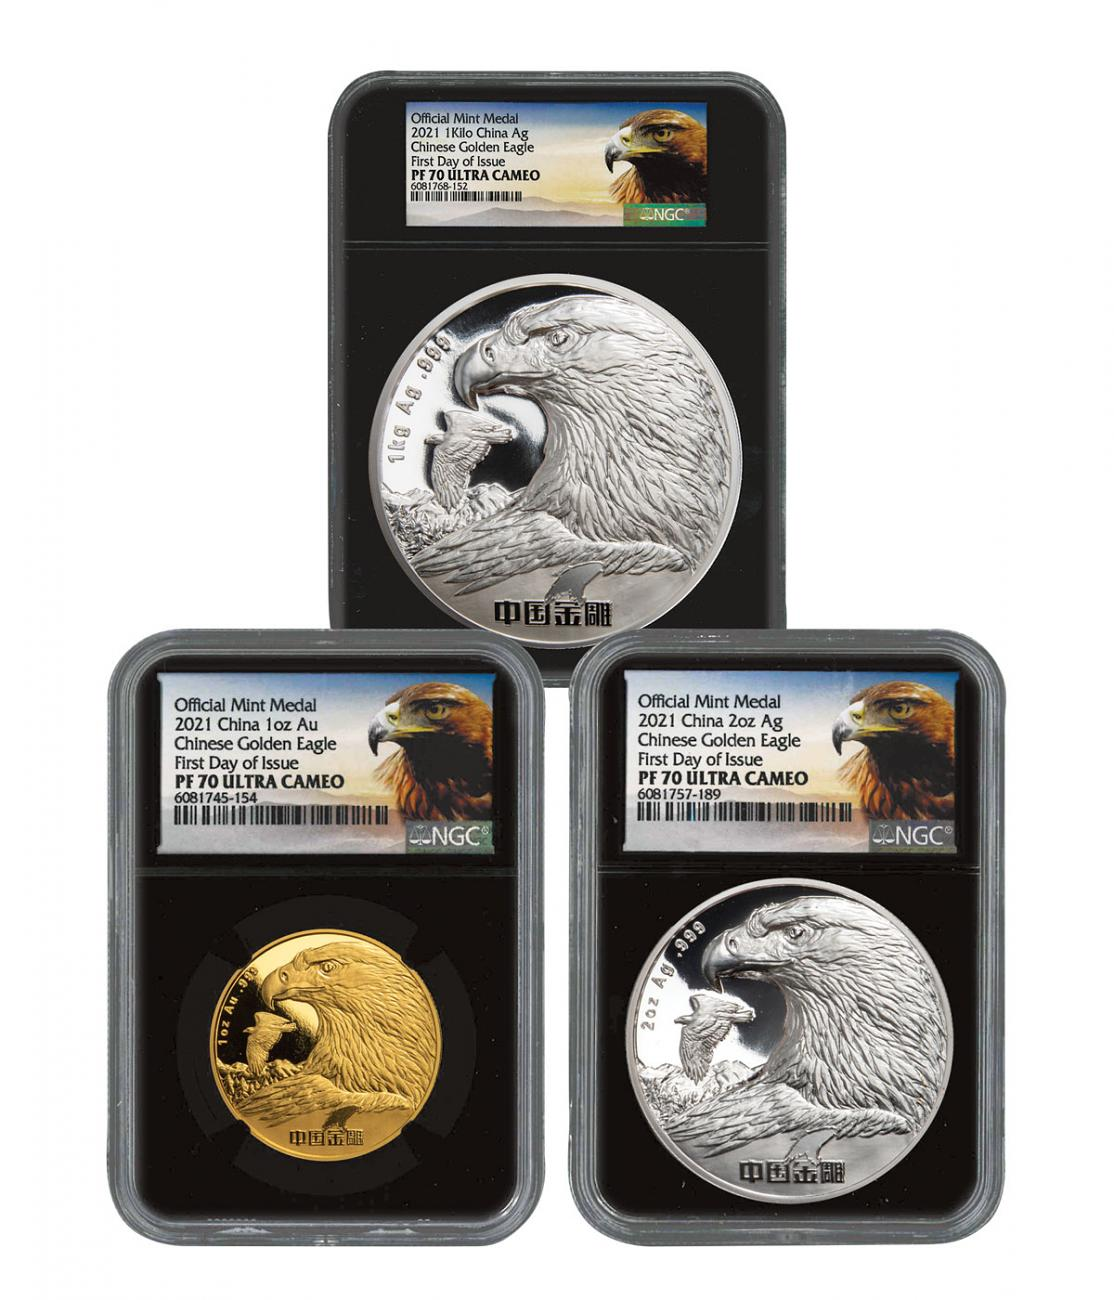 2021 China Golden Eagle 3-Medal Set 1 Kilo, 2 oz Silver + 1 oz Gold Proof Medal Scarce and Unique Coin Division NGC PF70 UC FDI